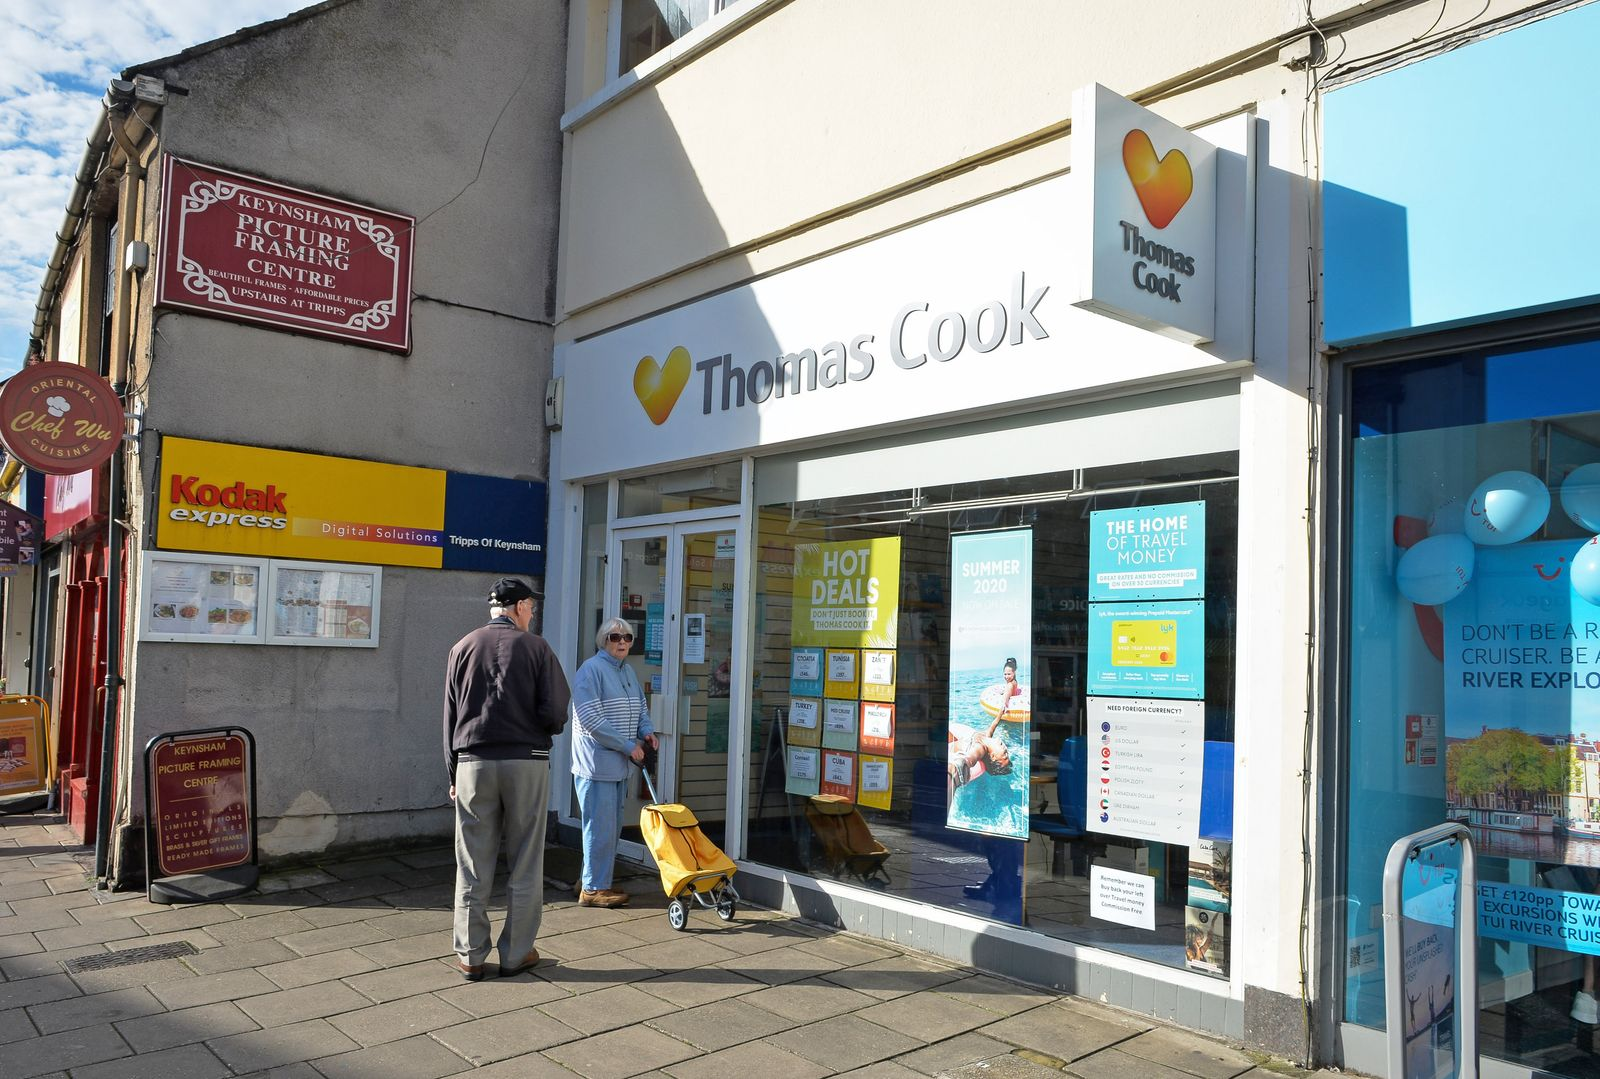 Thomas Cook / Reisebüro